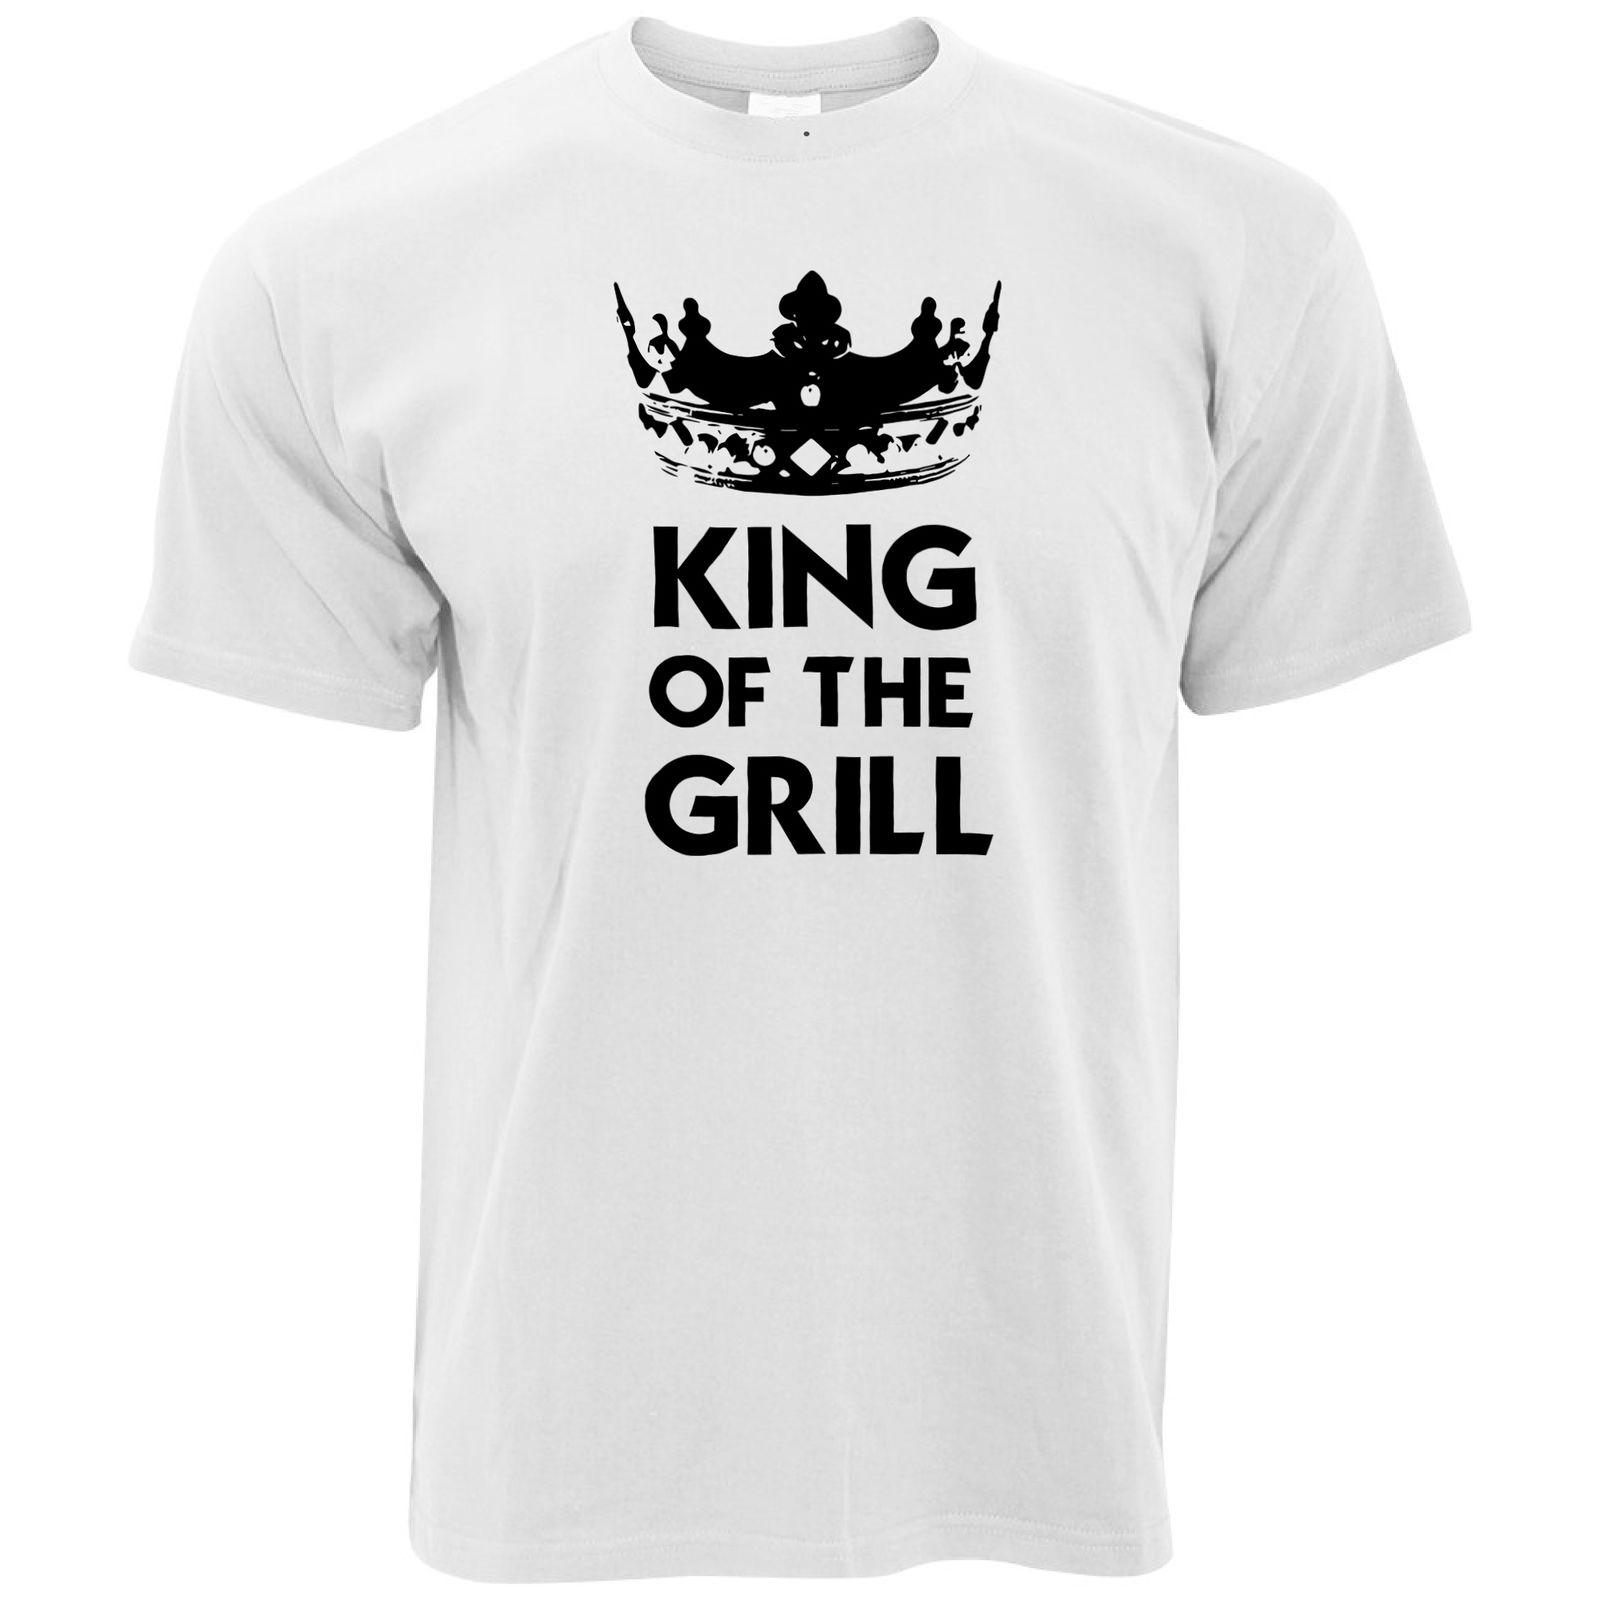 e57208e5 Novelty Cooking T Shirt King Of The Grill Slogan Chef Joke BBQ Crazy Tee  Shirts Novelty T Shirt From Oldshop77, $11.48| DHgate.Com